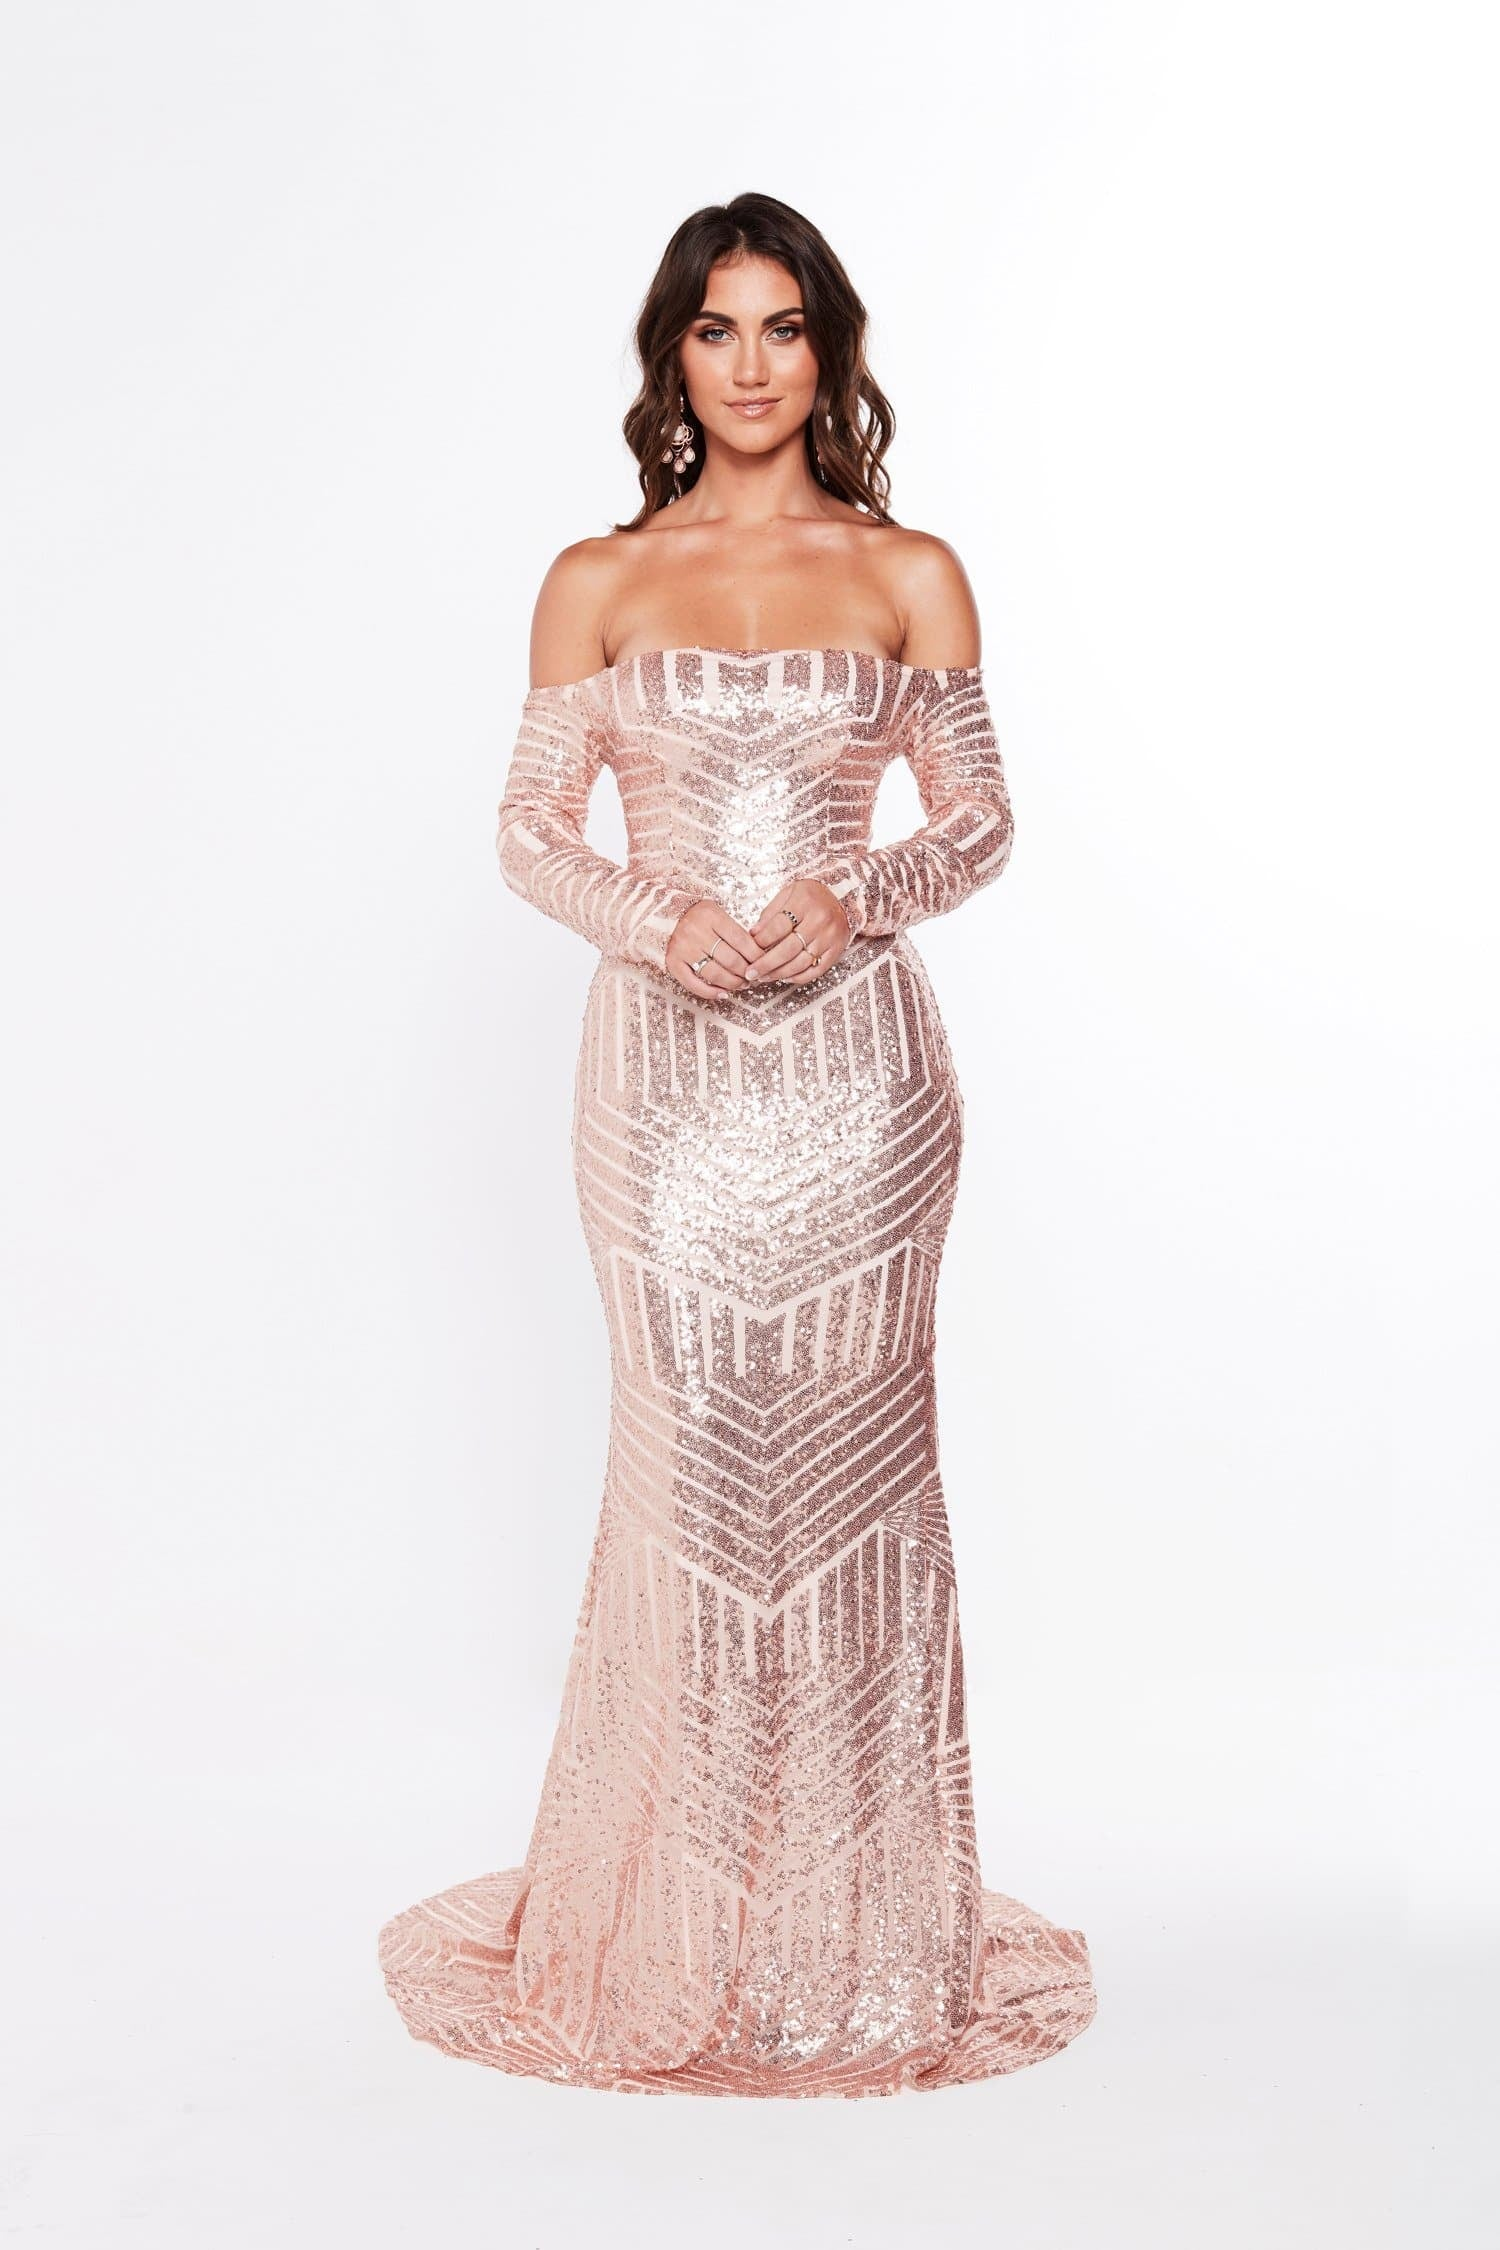 A&N Ariana - Long Sleeve Off the Shoulder Sequin Gown in Rose Gold